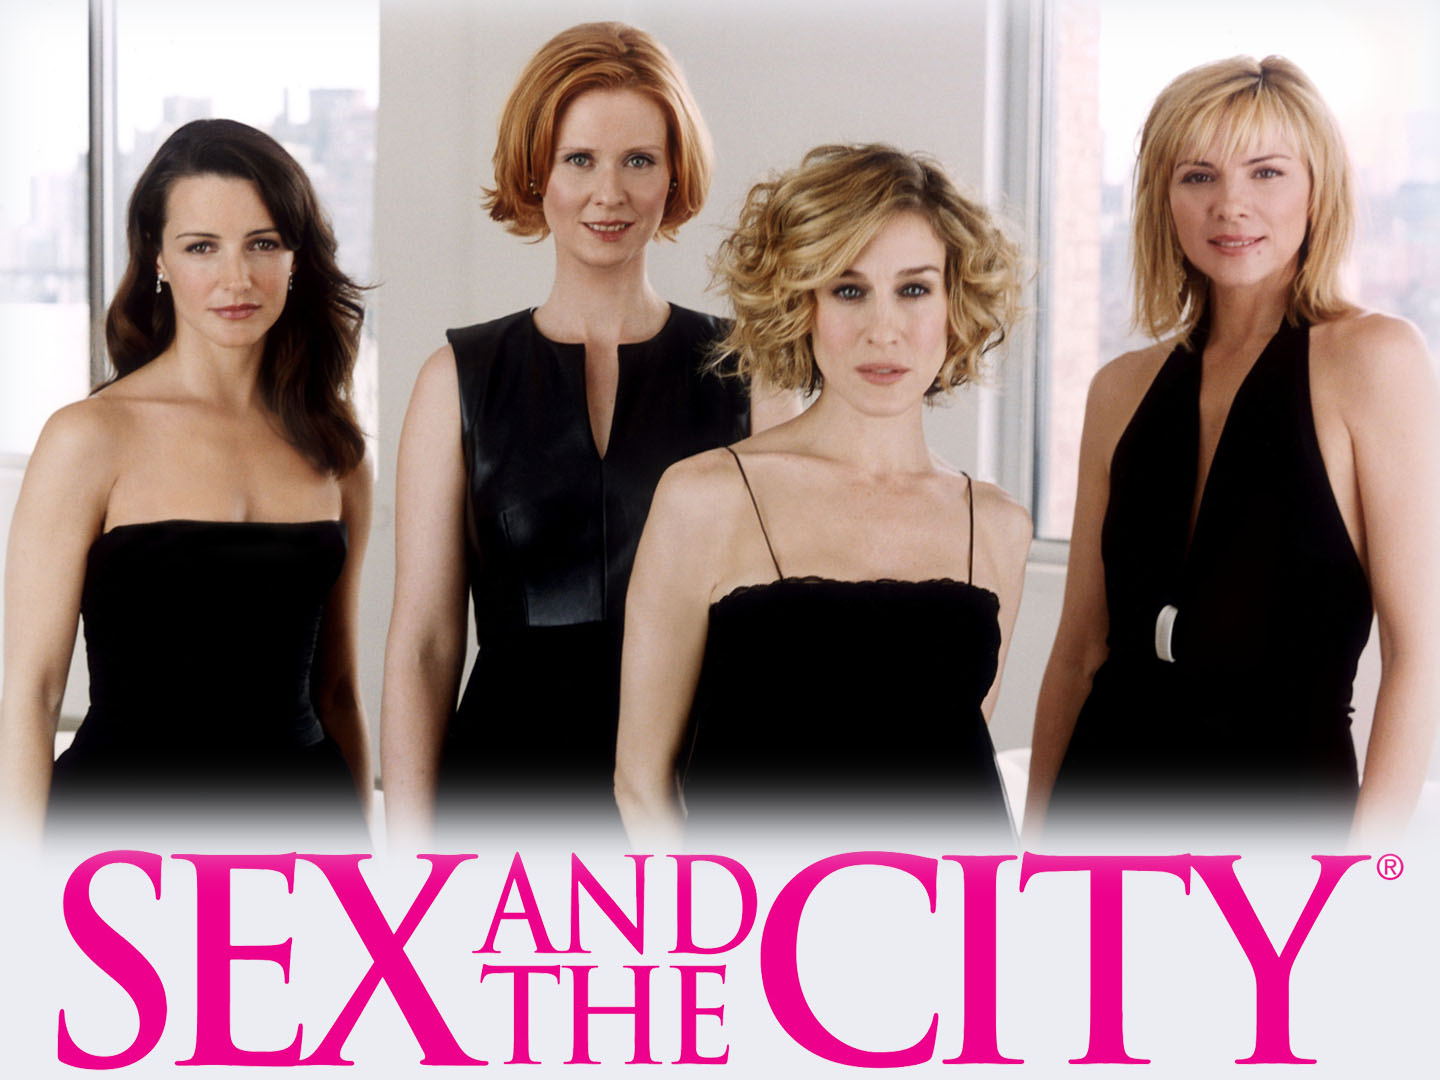 Sex and the city season 1 wiki